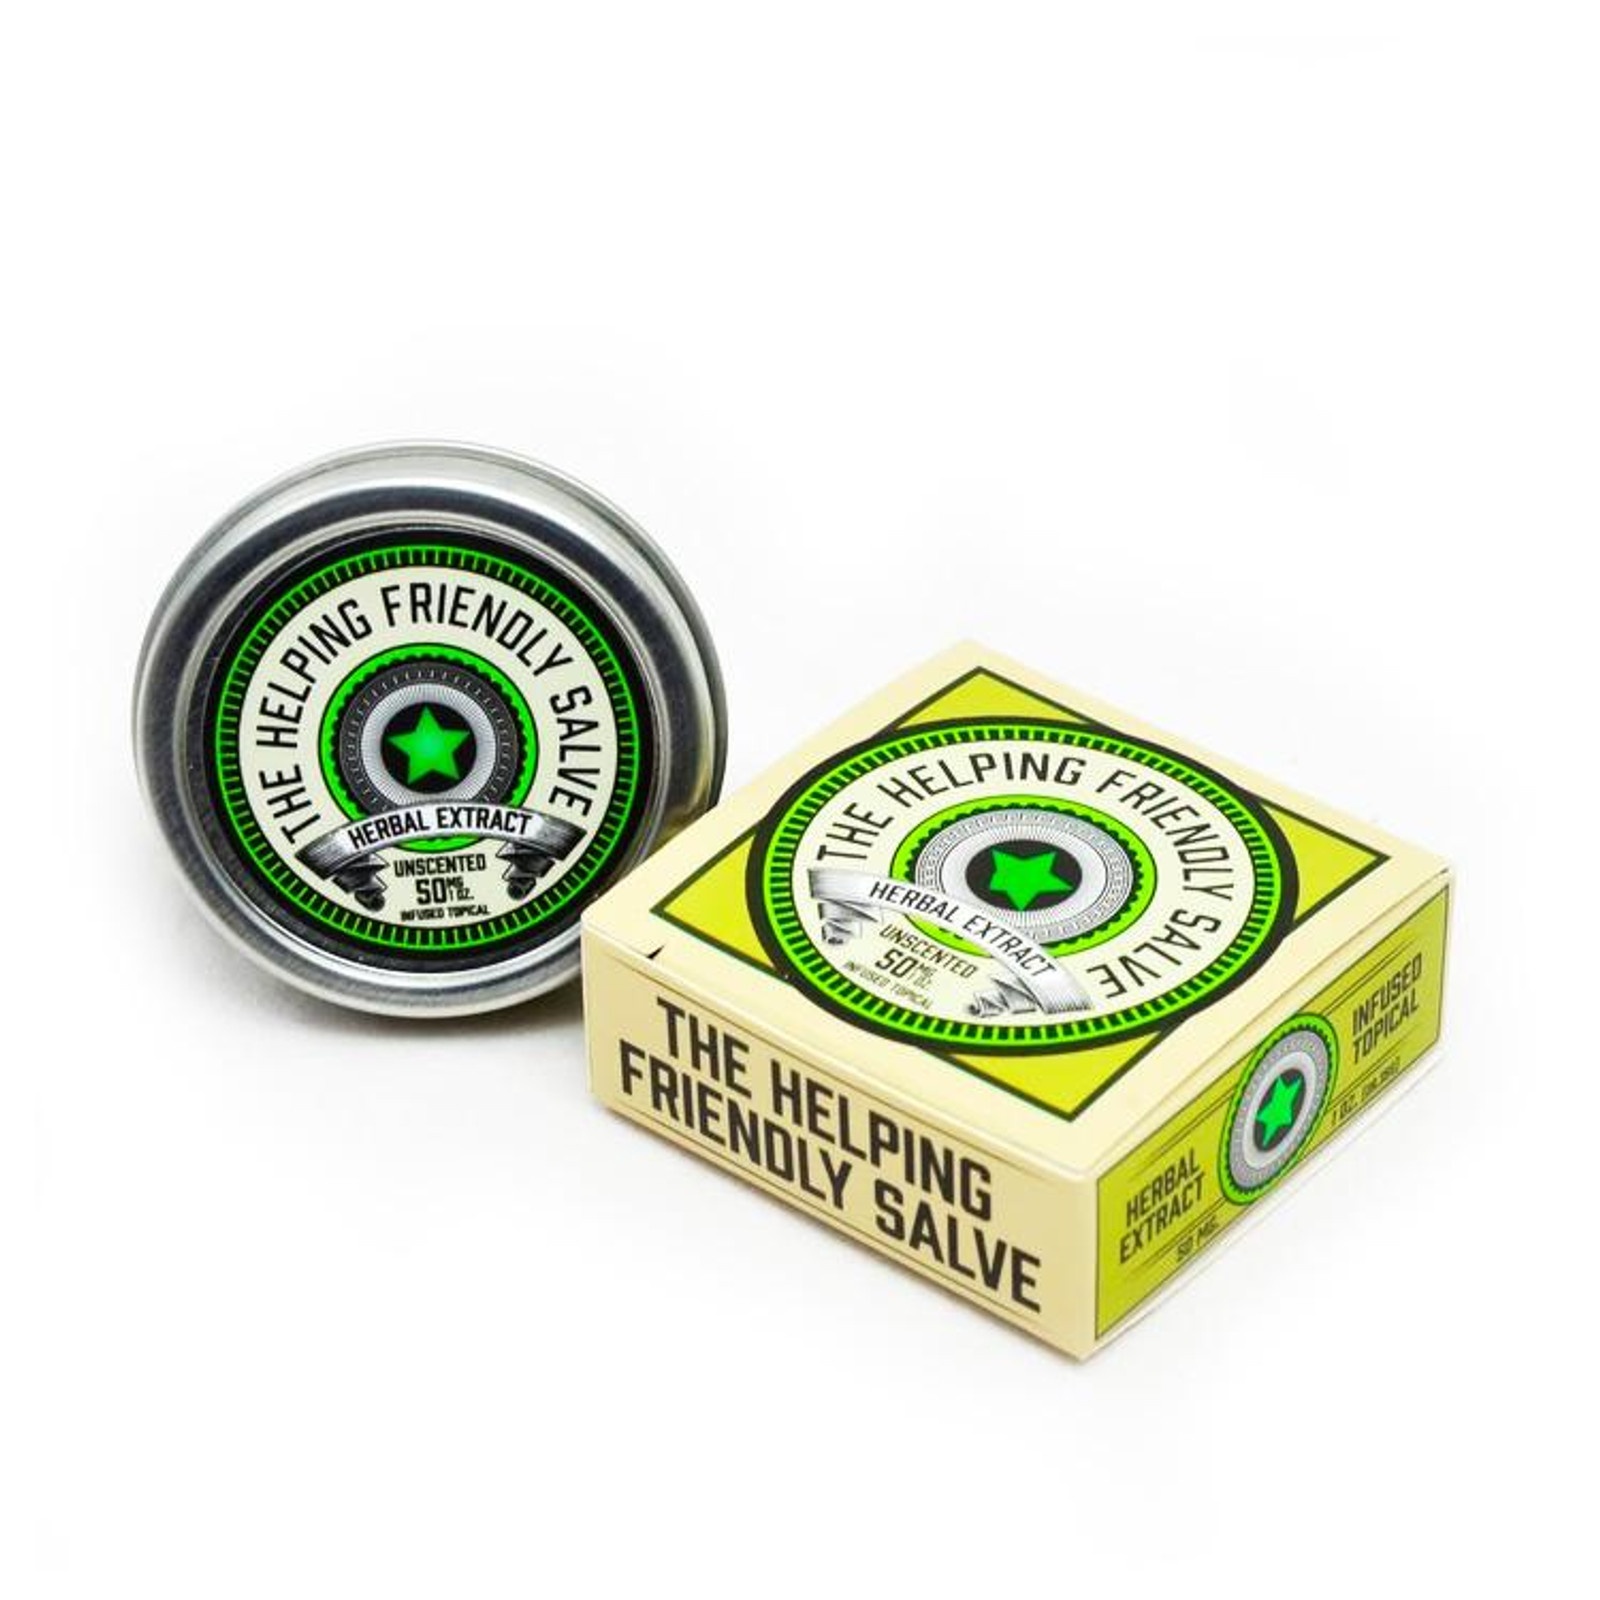 Unscented Salve by The Helping Friendly Salve